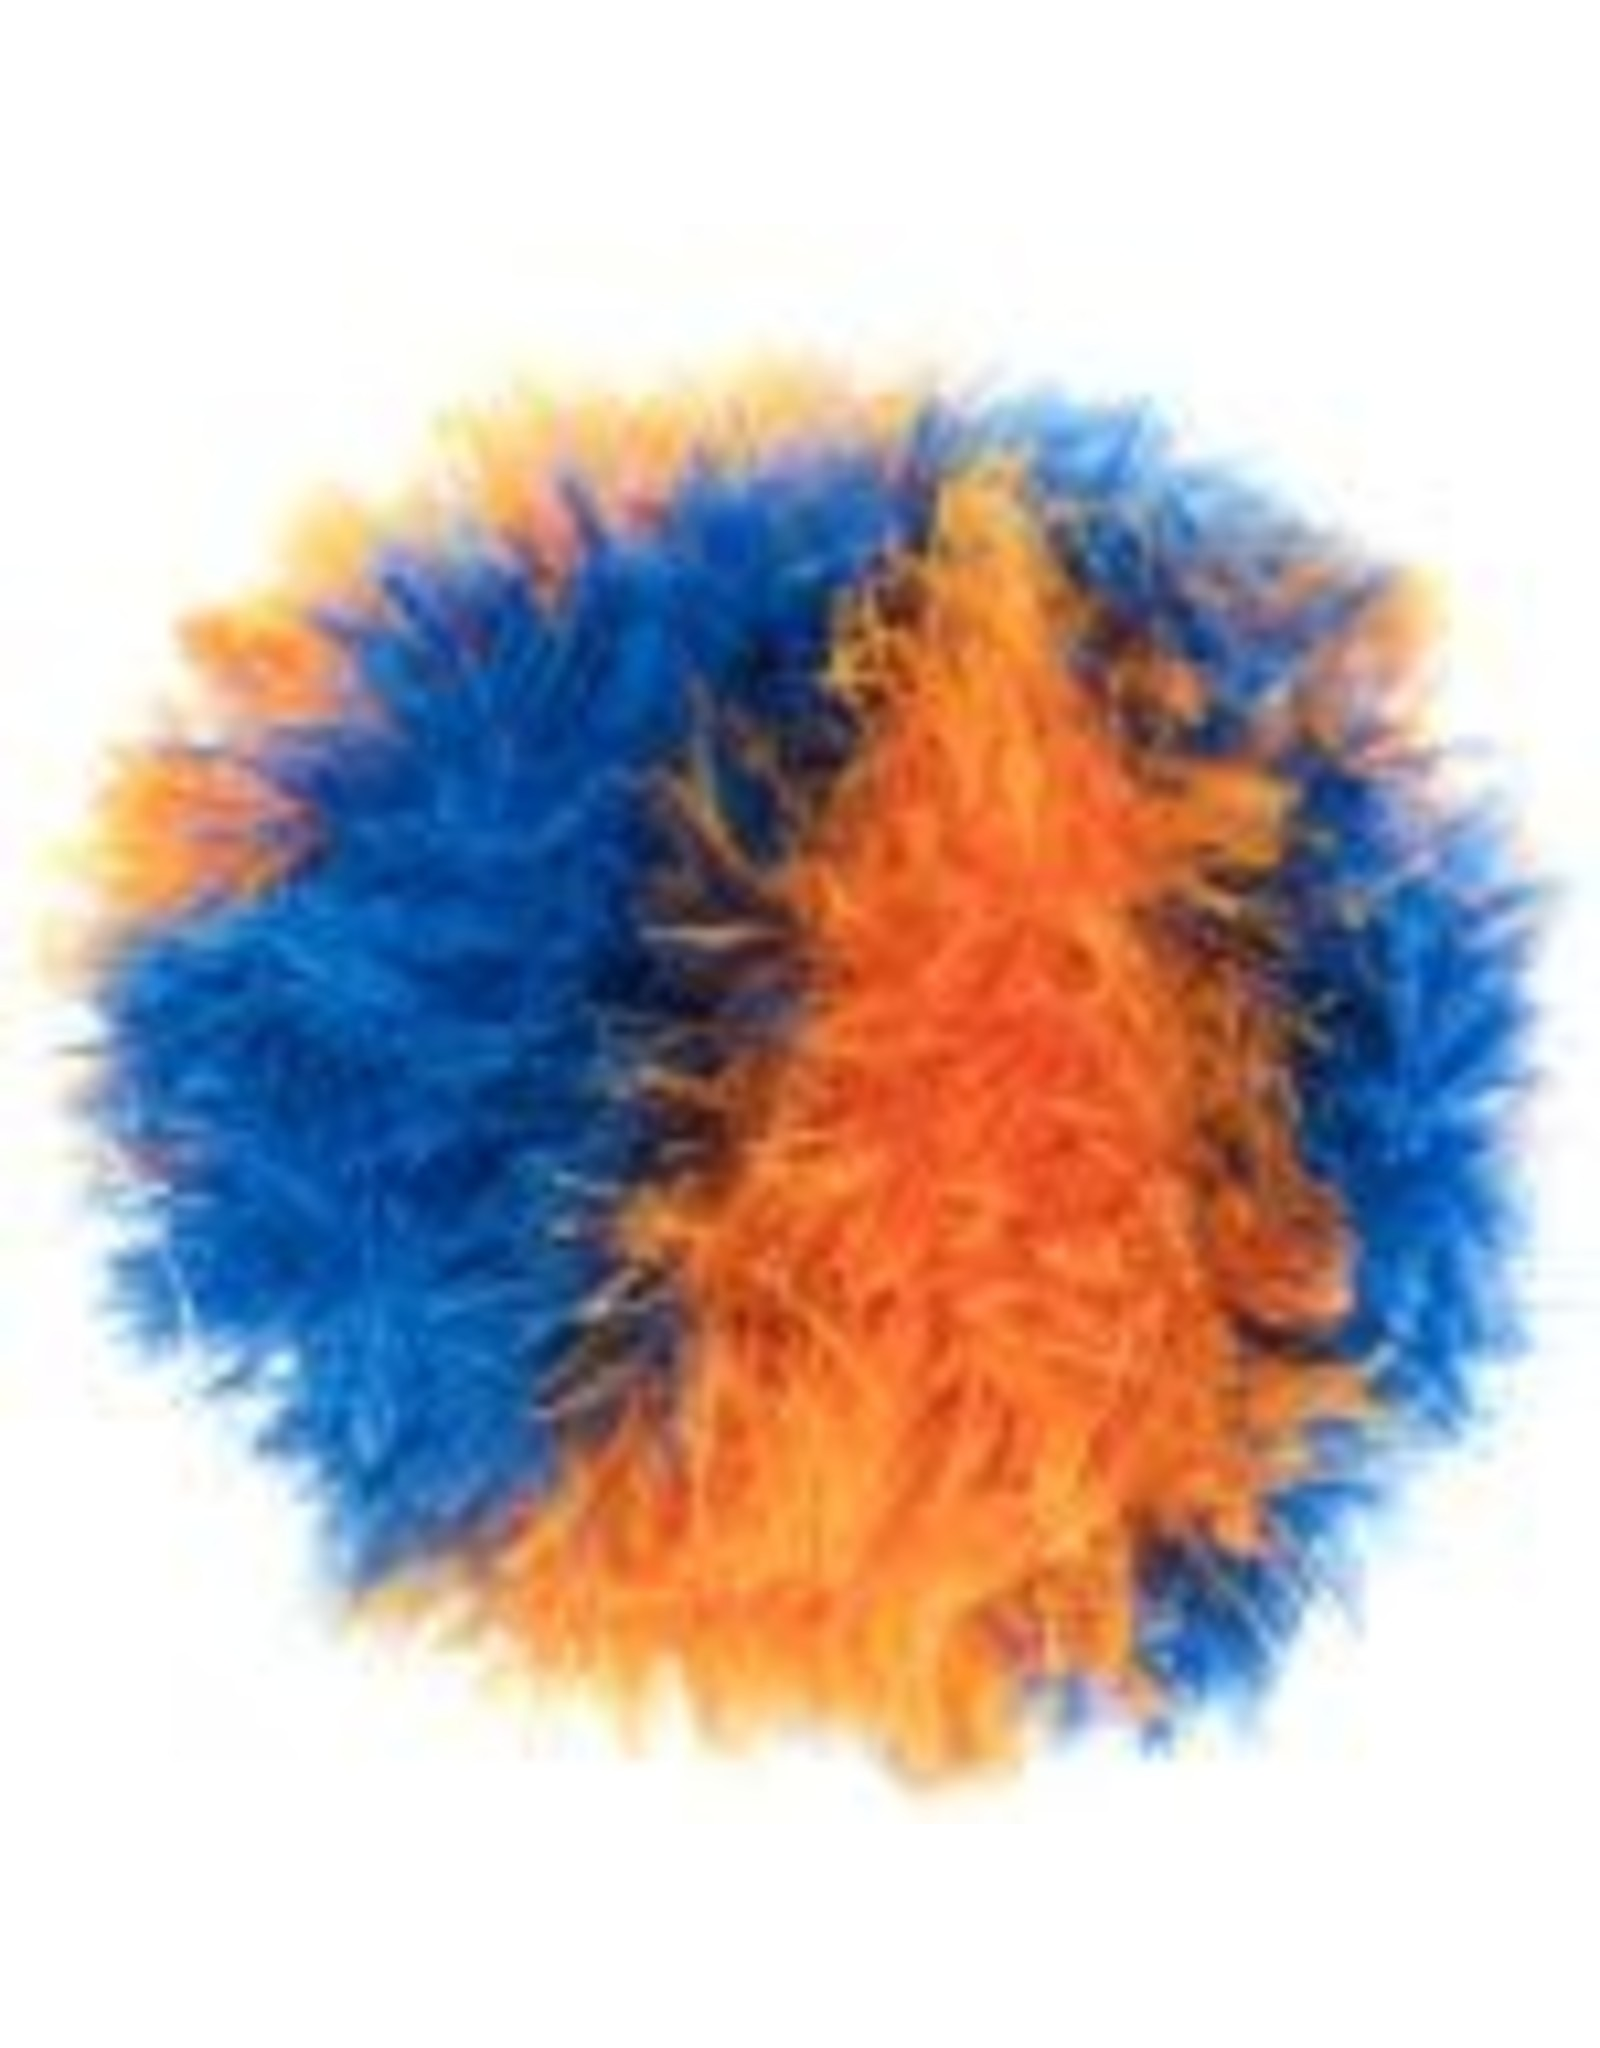 Oomaloo OoMaloo Ball Medium Blue Orange